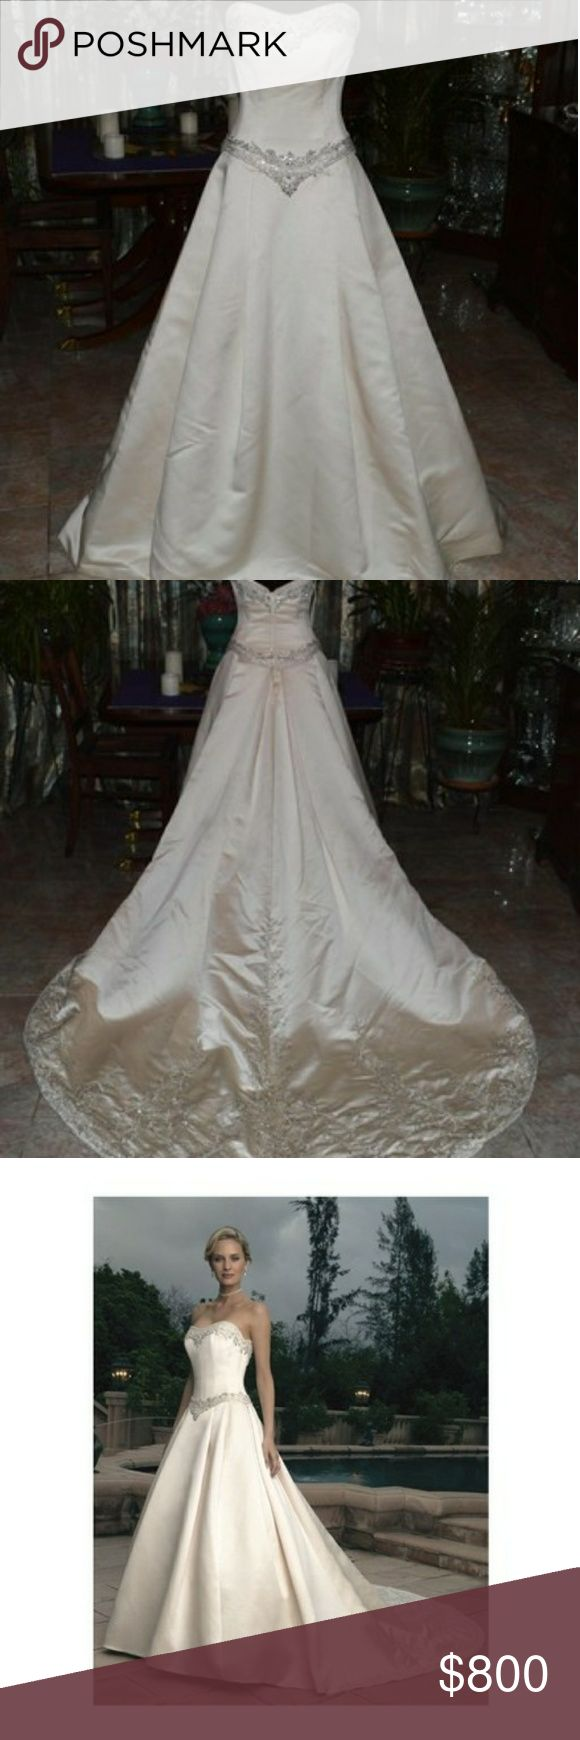 Casablanca Bridal Gown 1802 gorgeous gown, clean and unaltered from a closed bridal shop. Dr Ivory ballgown with crystals on sweetheart neckline and on dropped waist Casablanca Dresses Wedding